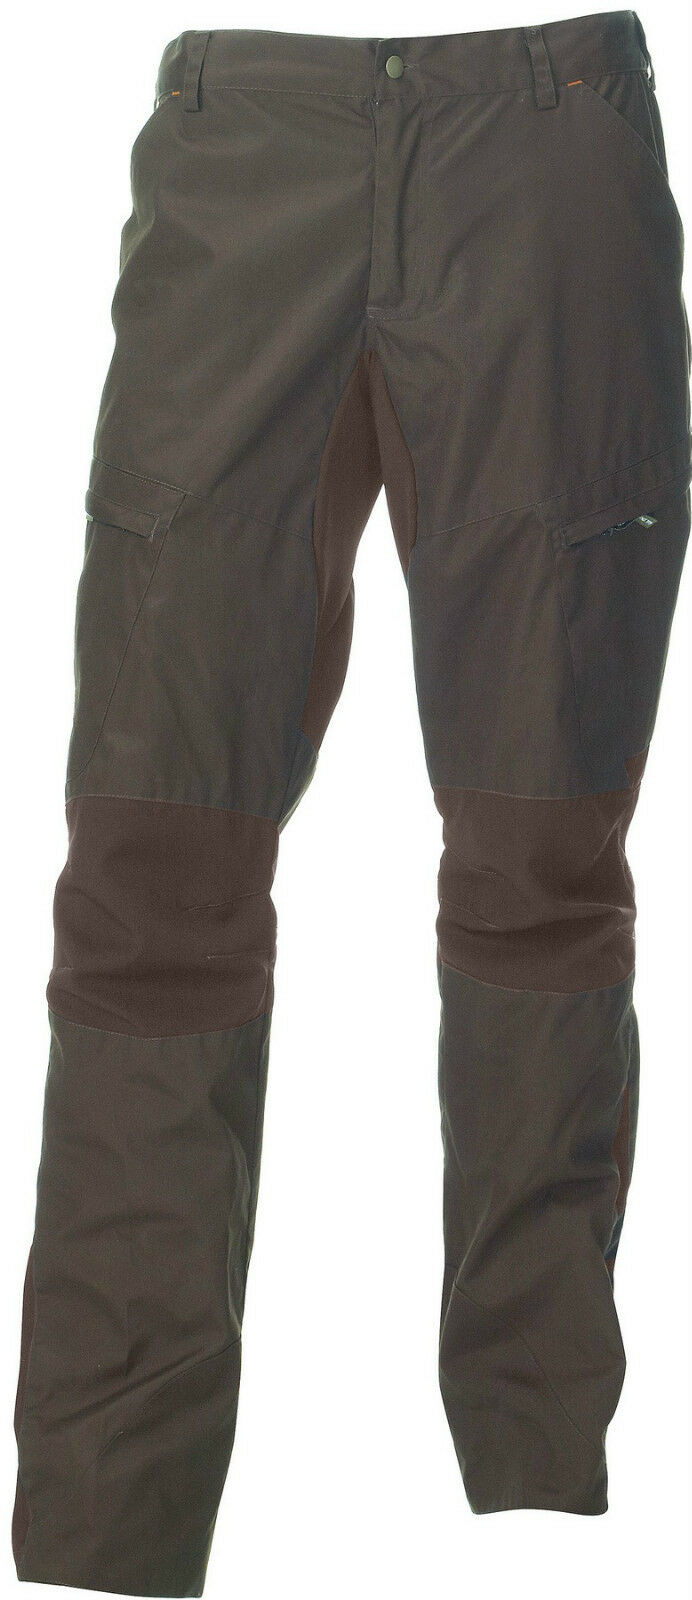 Swedteam Jagd- and Leisure Pants Lynx Lady - with Stretch - 90-24 -